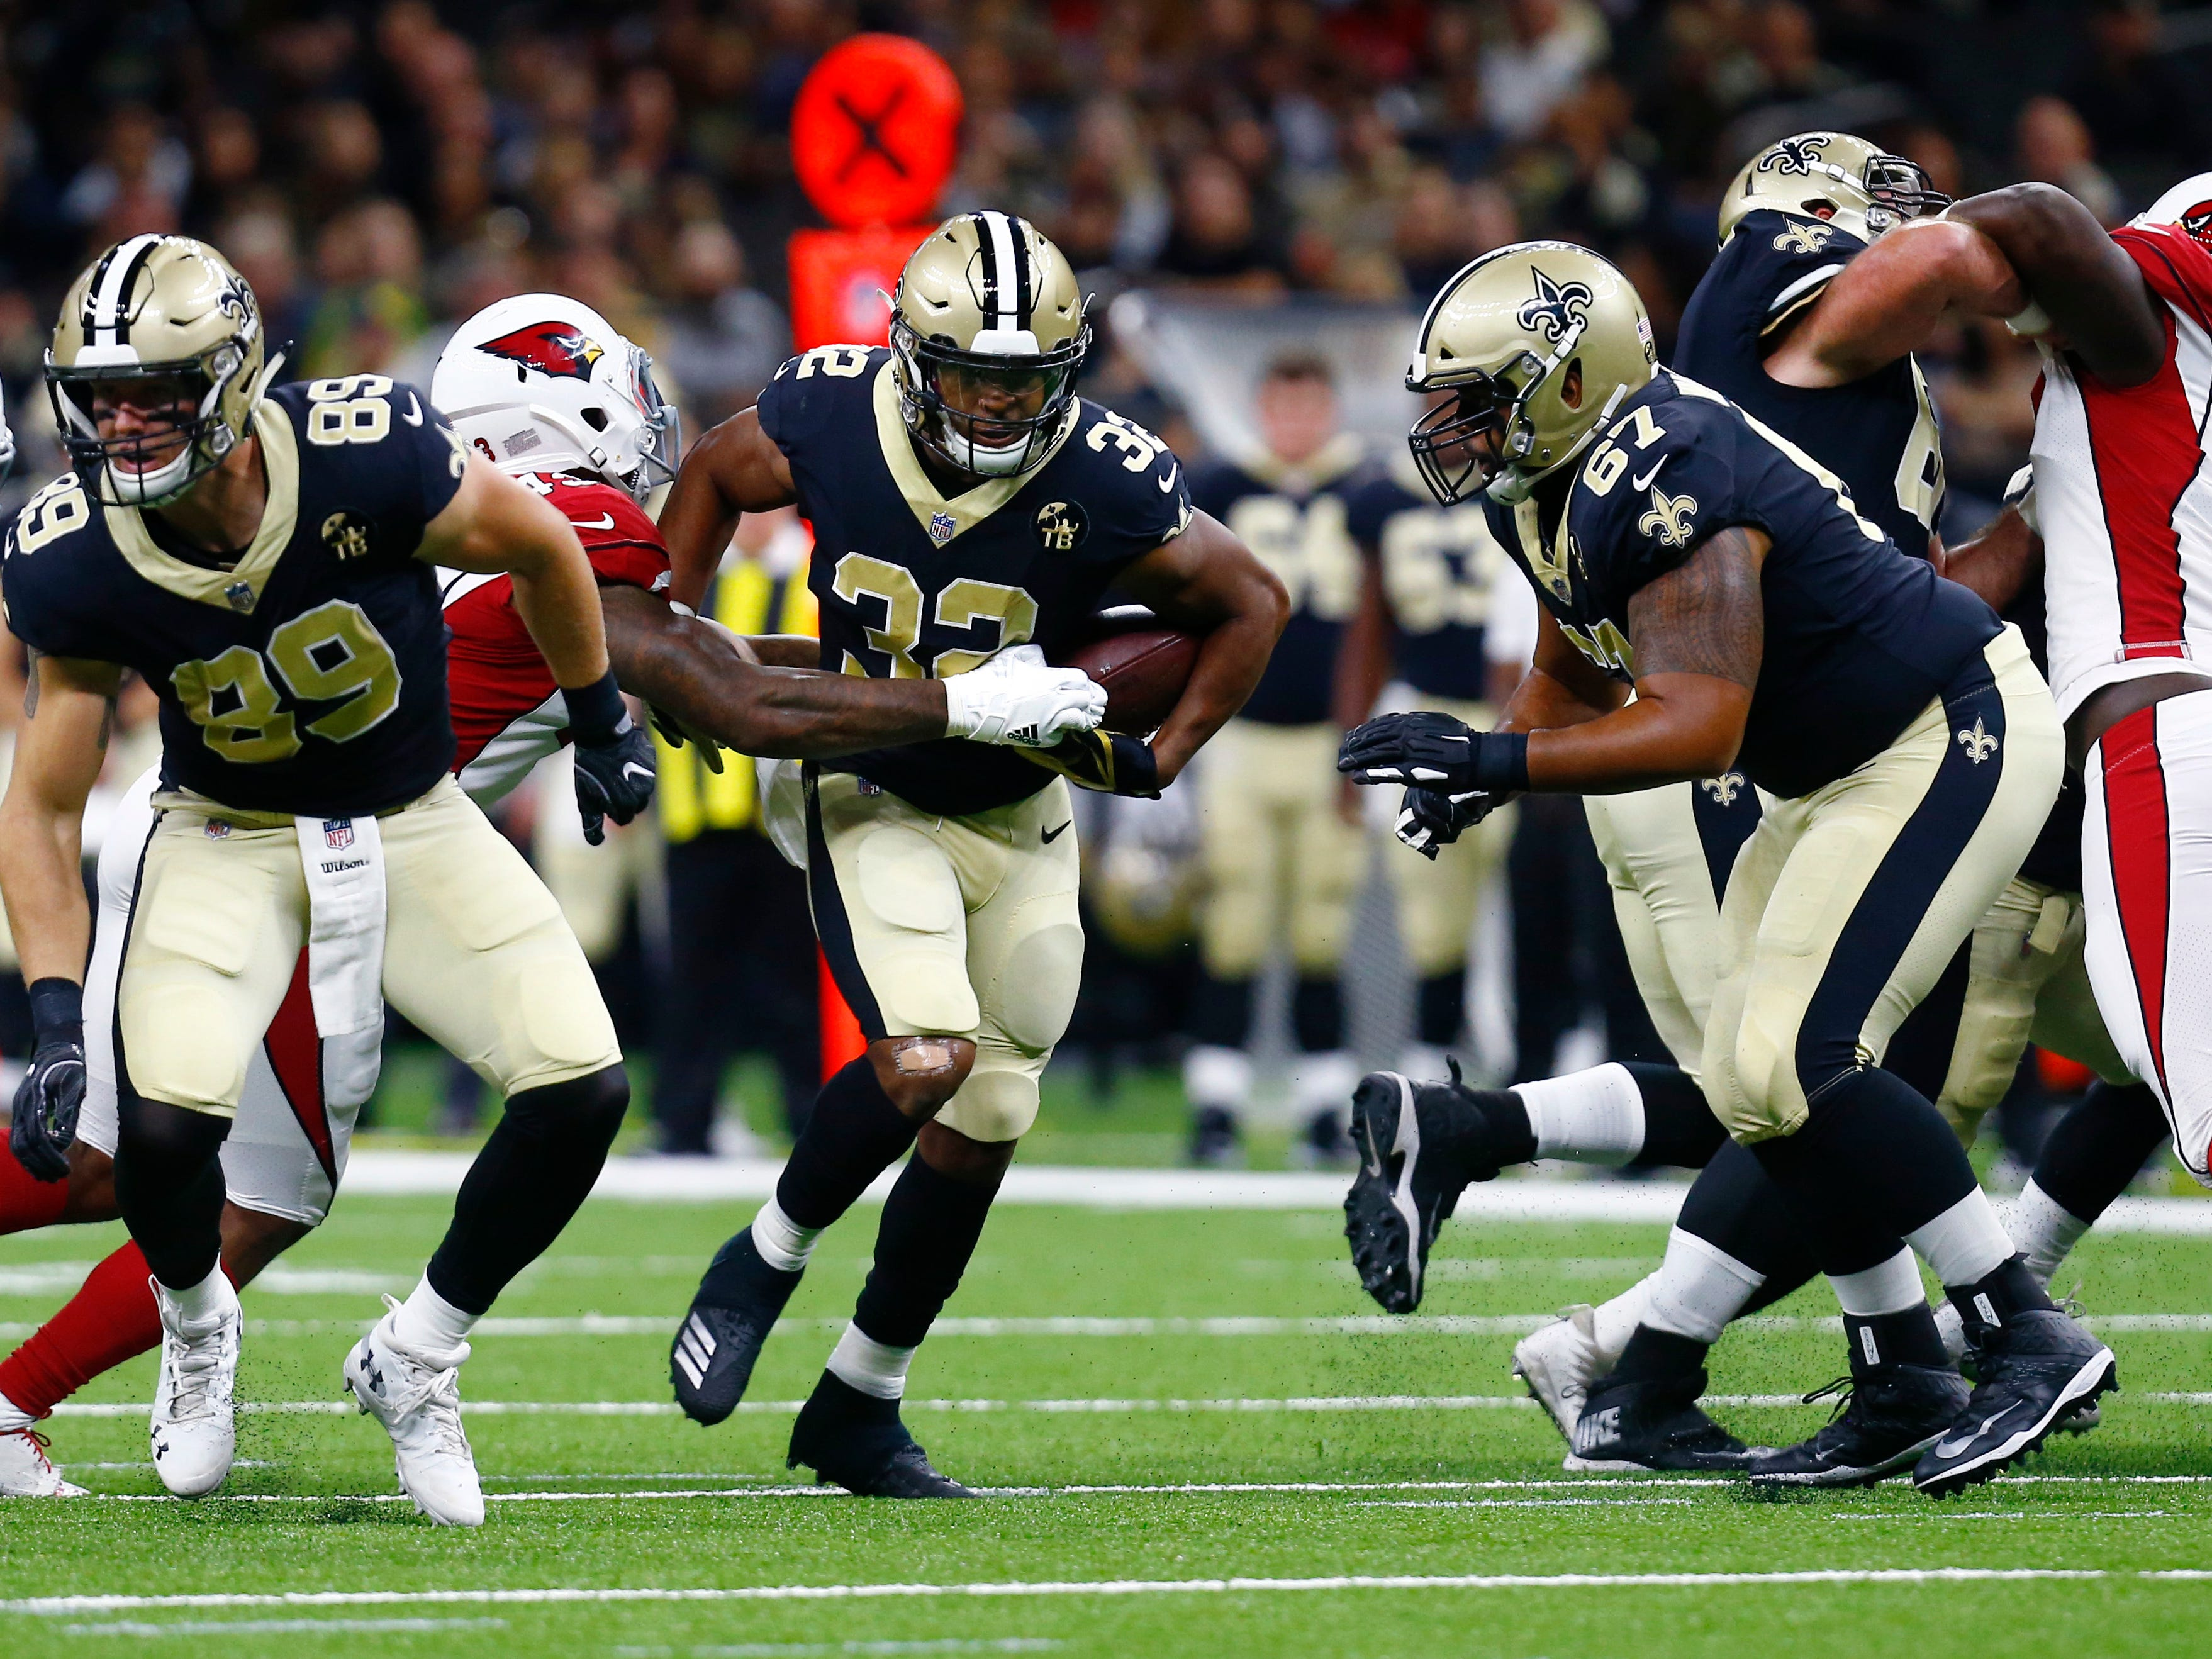 New Orleans Saints running back Jonathan Williams (32) carries in the first half of an NFL preseason football game against the Arizona Cardinals in New Orleans, Friday, Aug. 17, 2018.